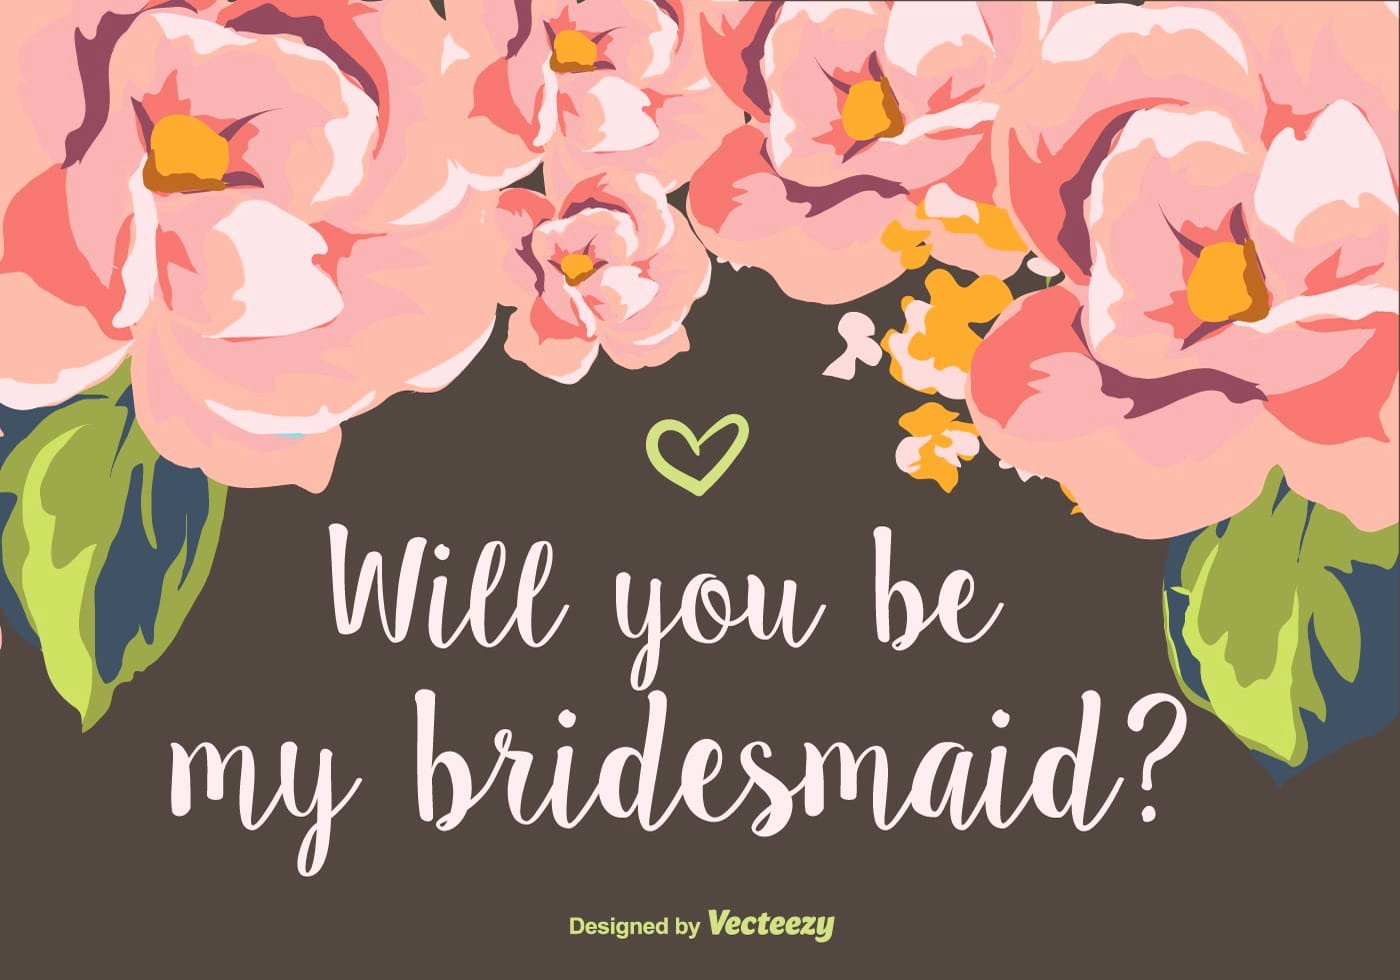 Will You Be My Bridesmaid Letter Template Inspirational Will You Be My Bridesmaid Download Free Vector Art